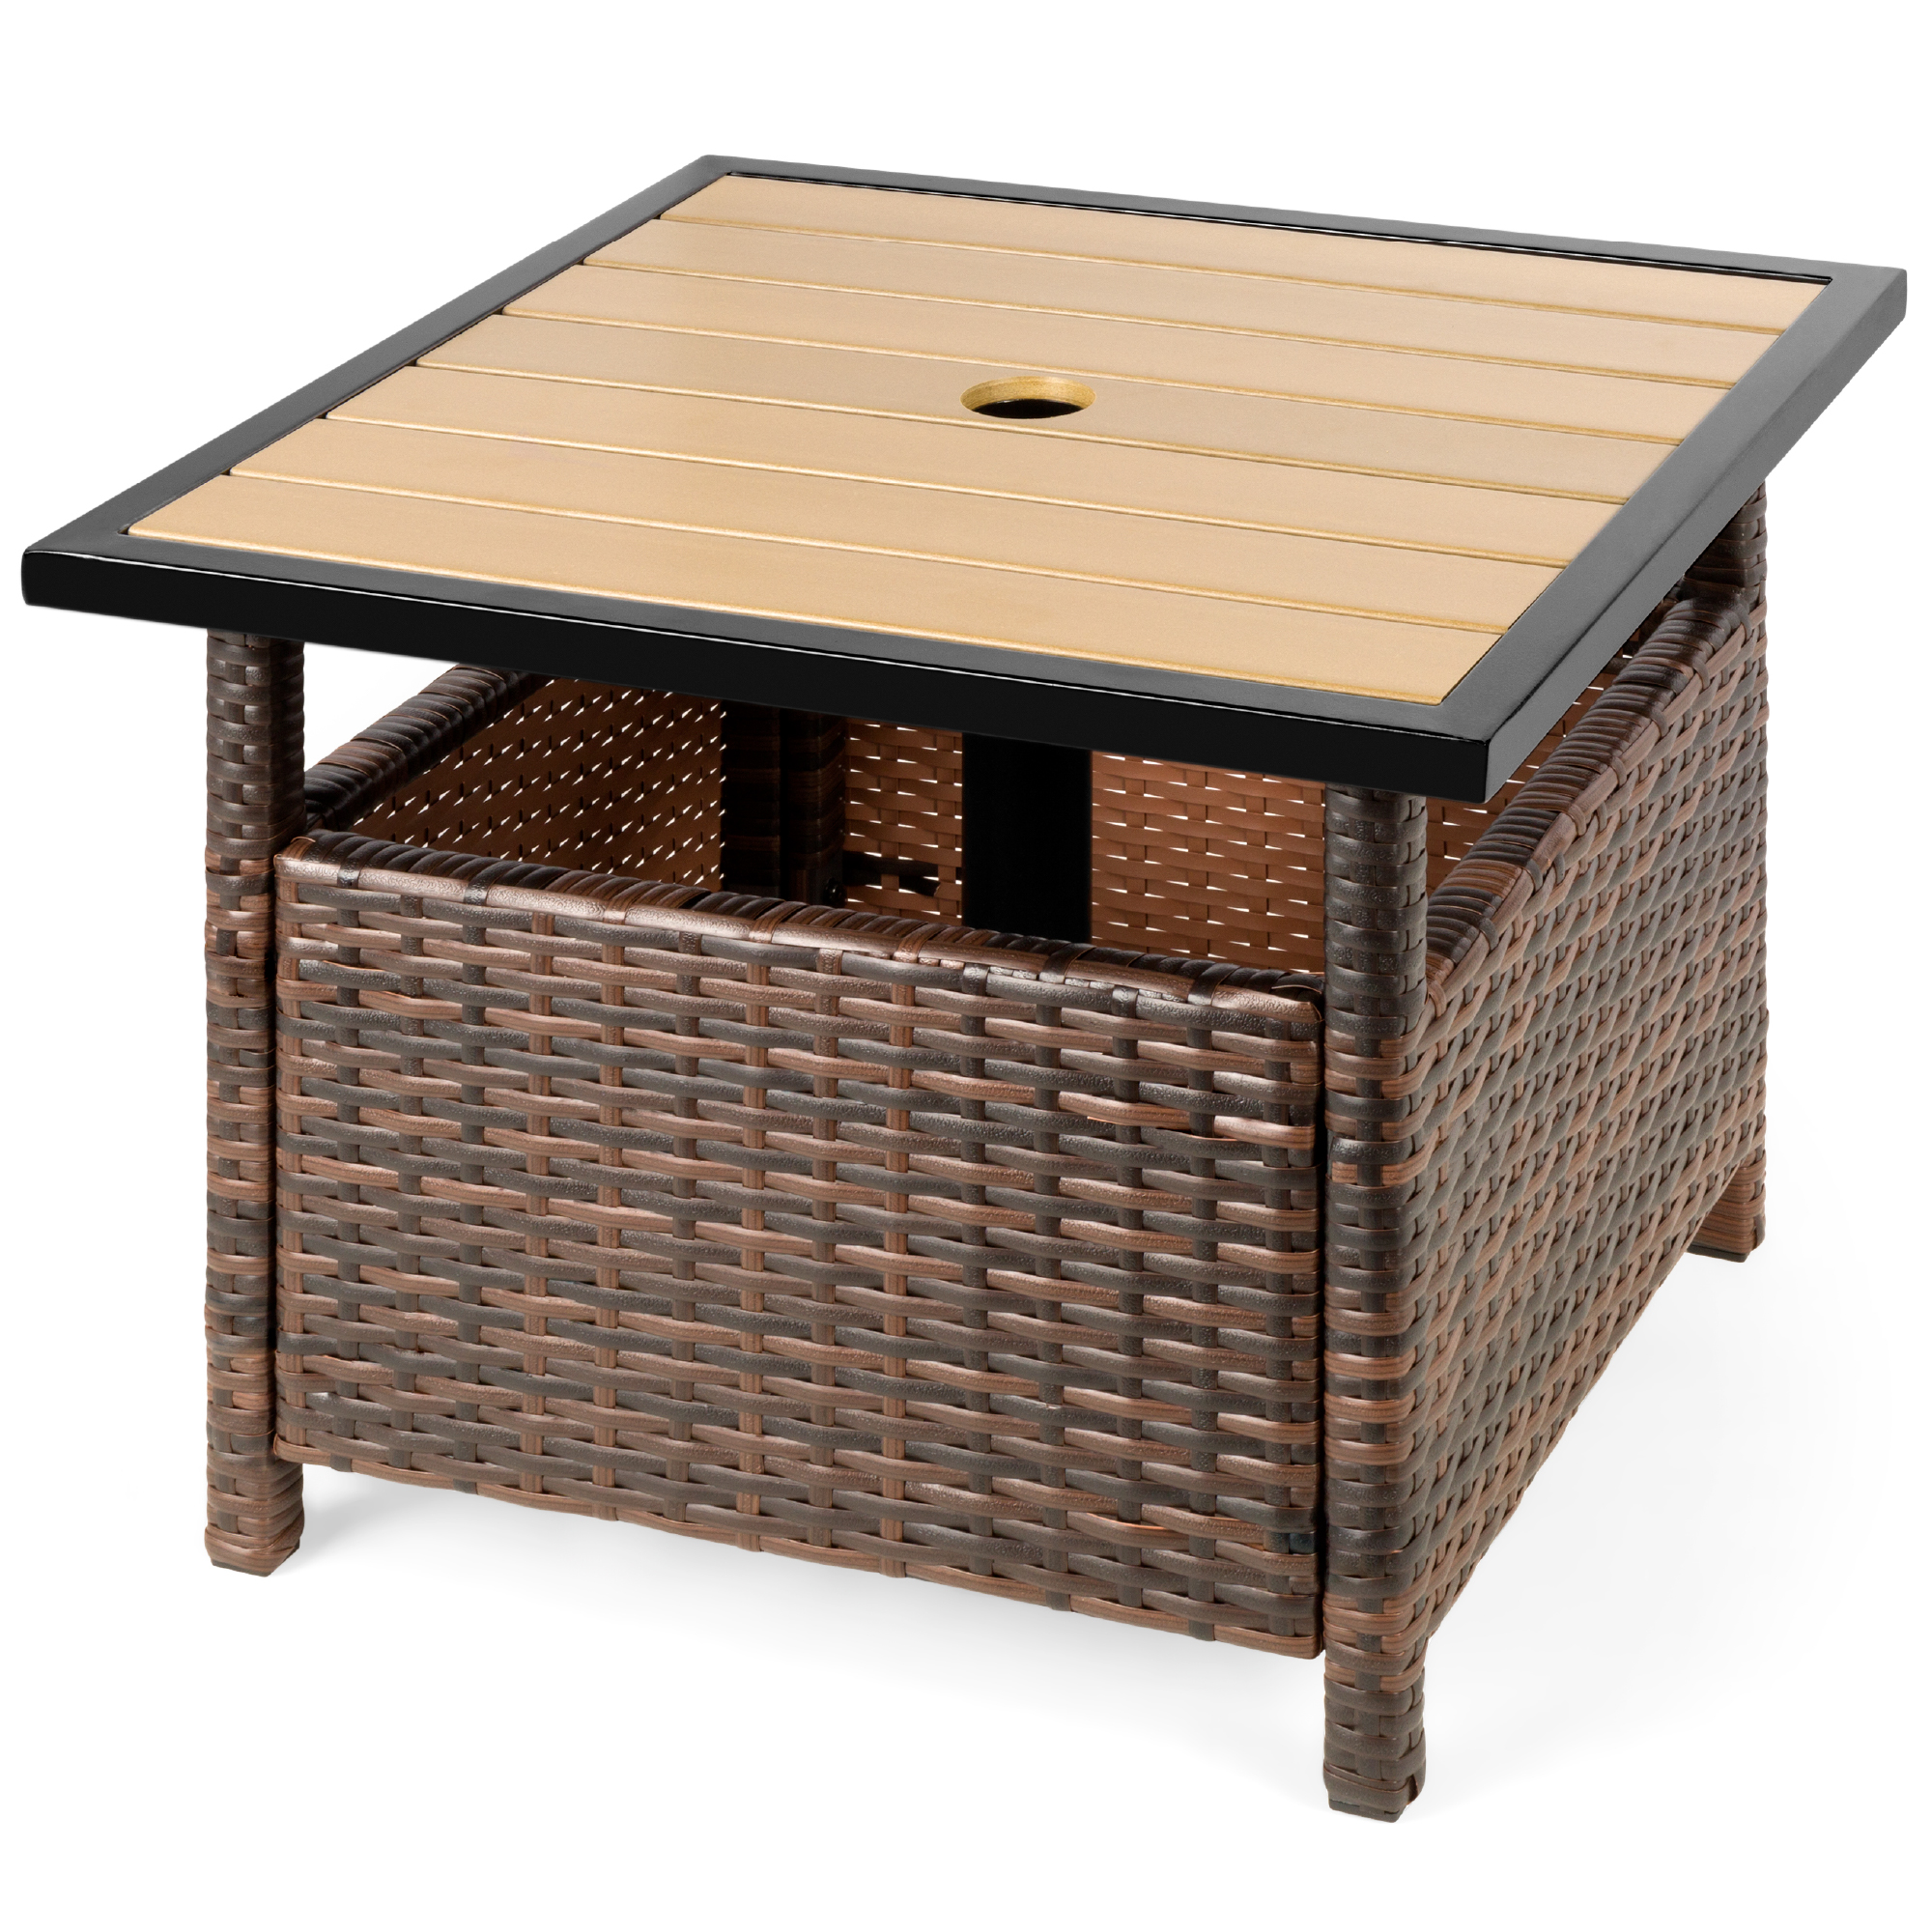 best choice products wicker rattan patio side table outdoor furniture for garden pool deck w umbrella hole brown walmart com